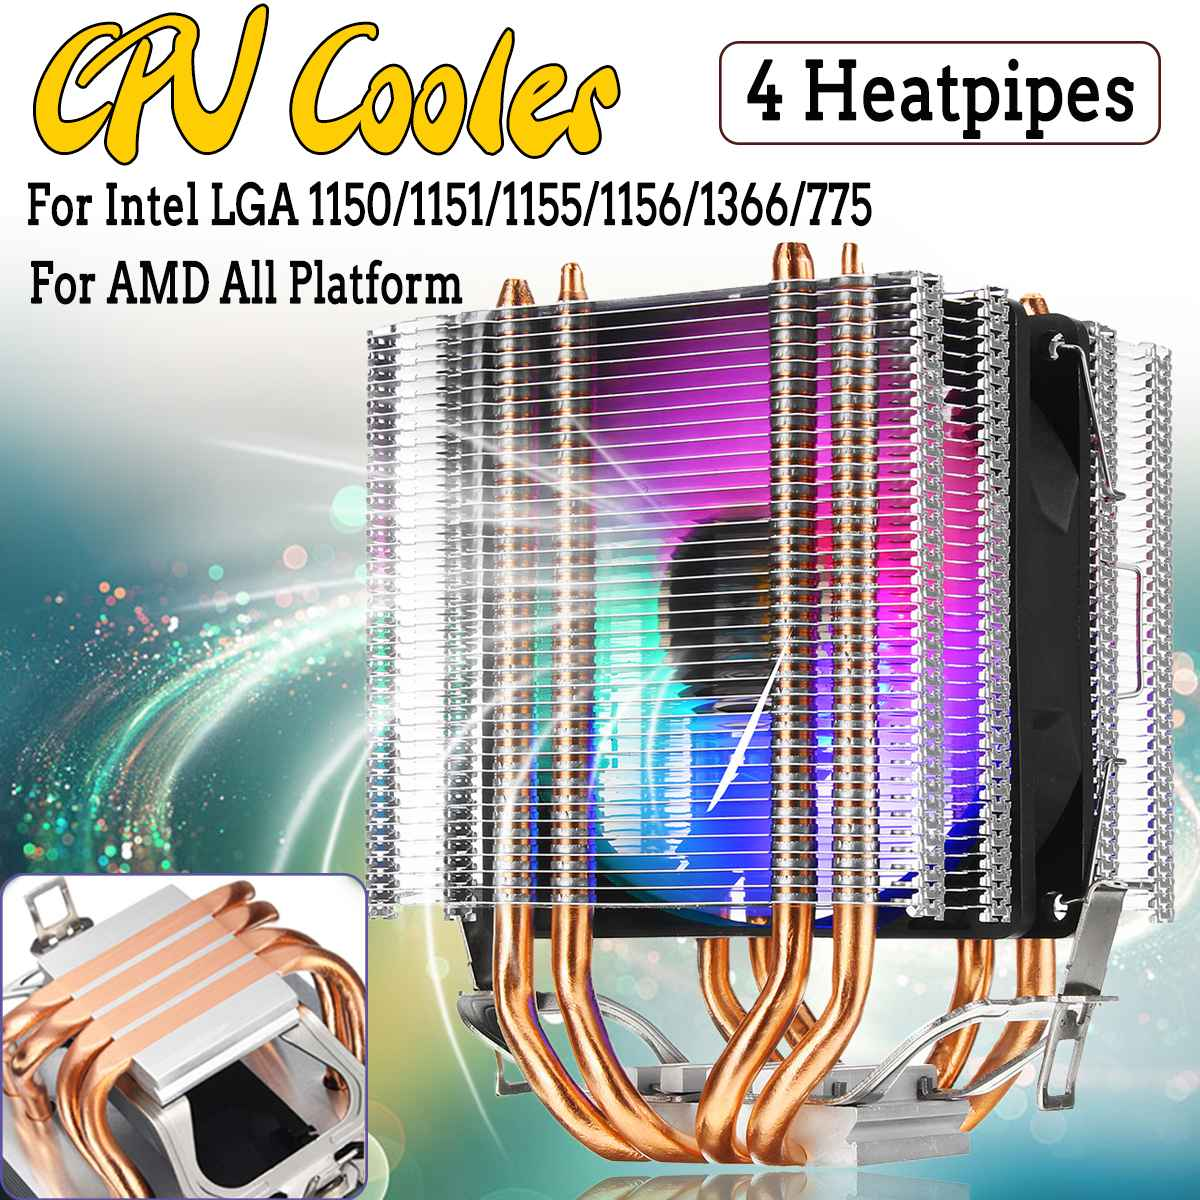 Dual Tower RGB CPU Cooler 4 Copper Heatpipe Heat Sink 4 Pin Quiet Cooling Fan For Intel LAG 1155 1156 775 For AMD Socket AM3/AM2